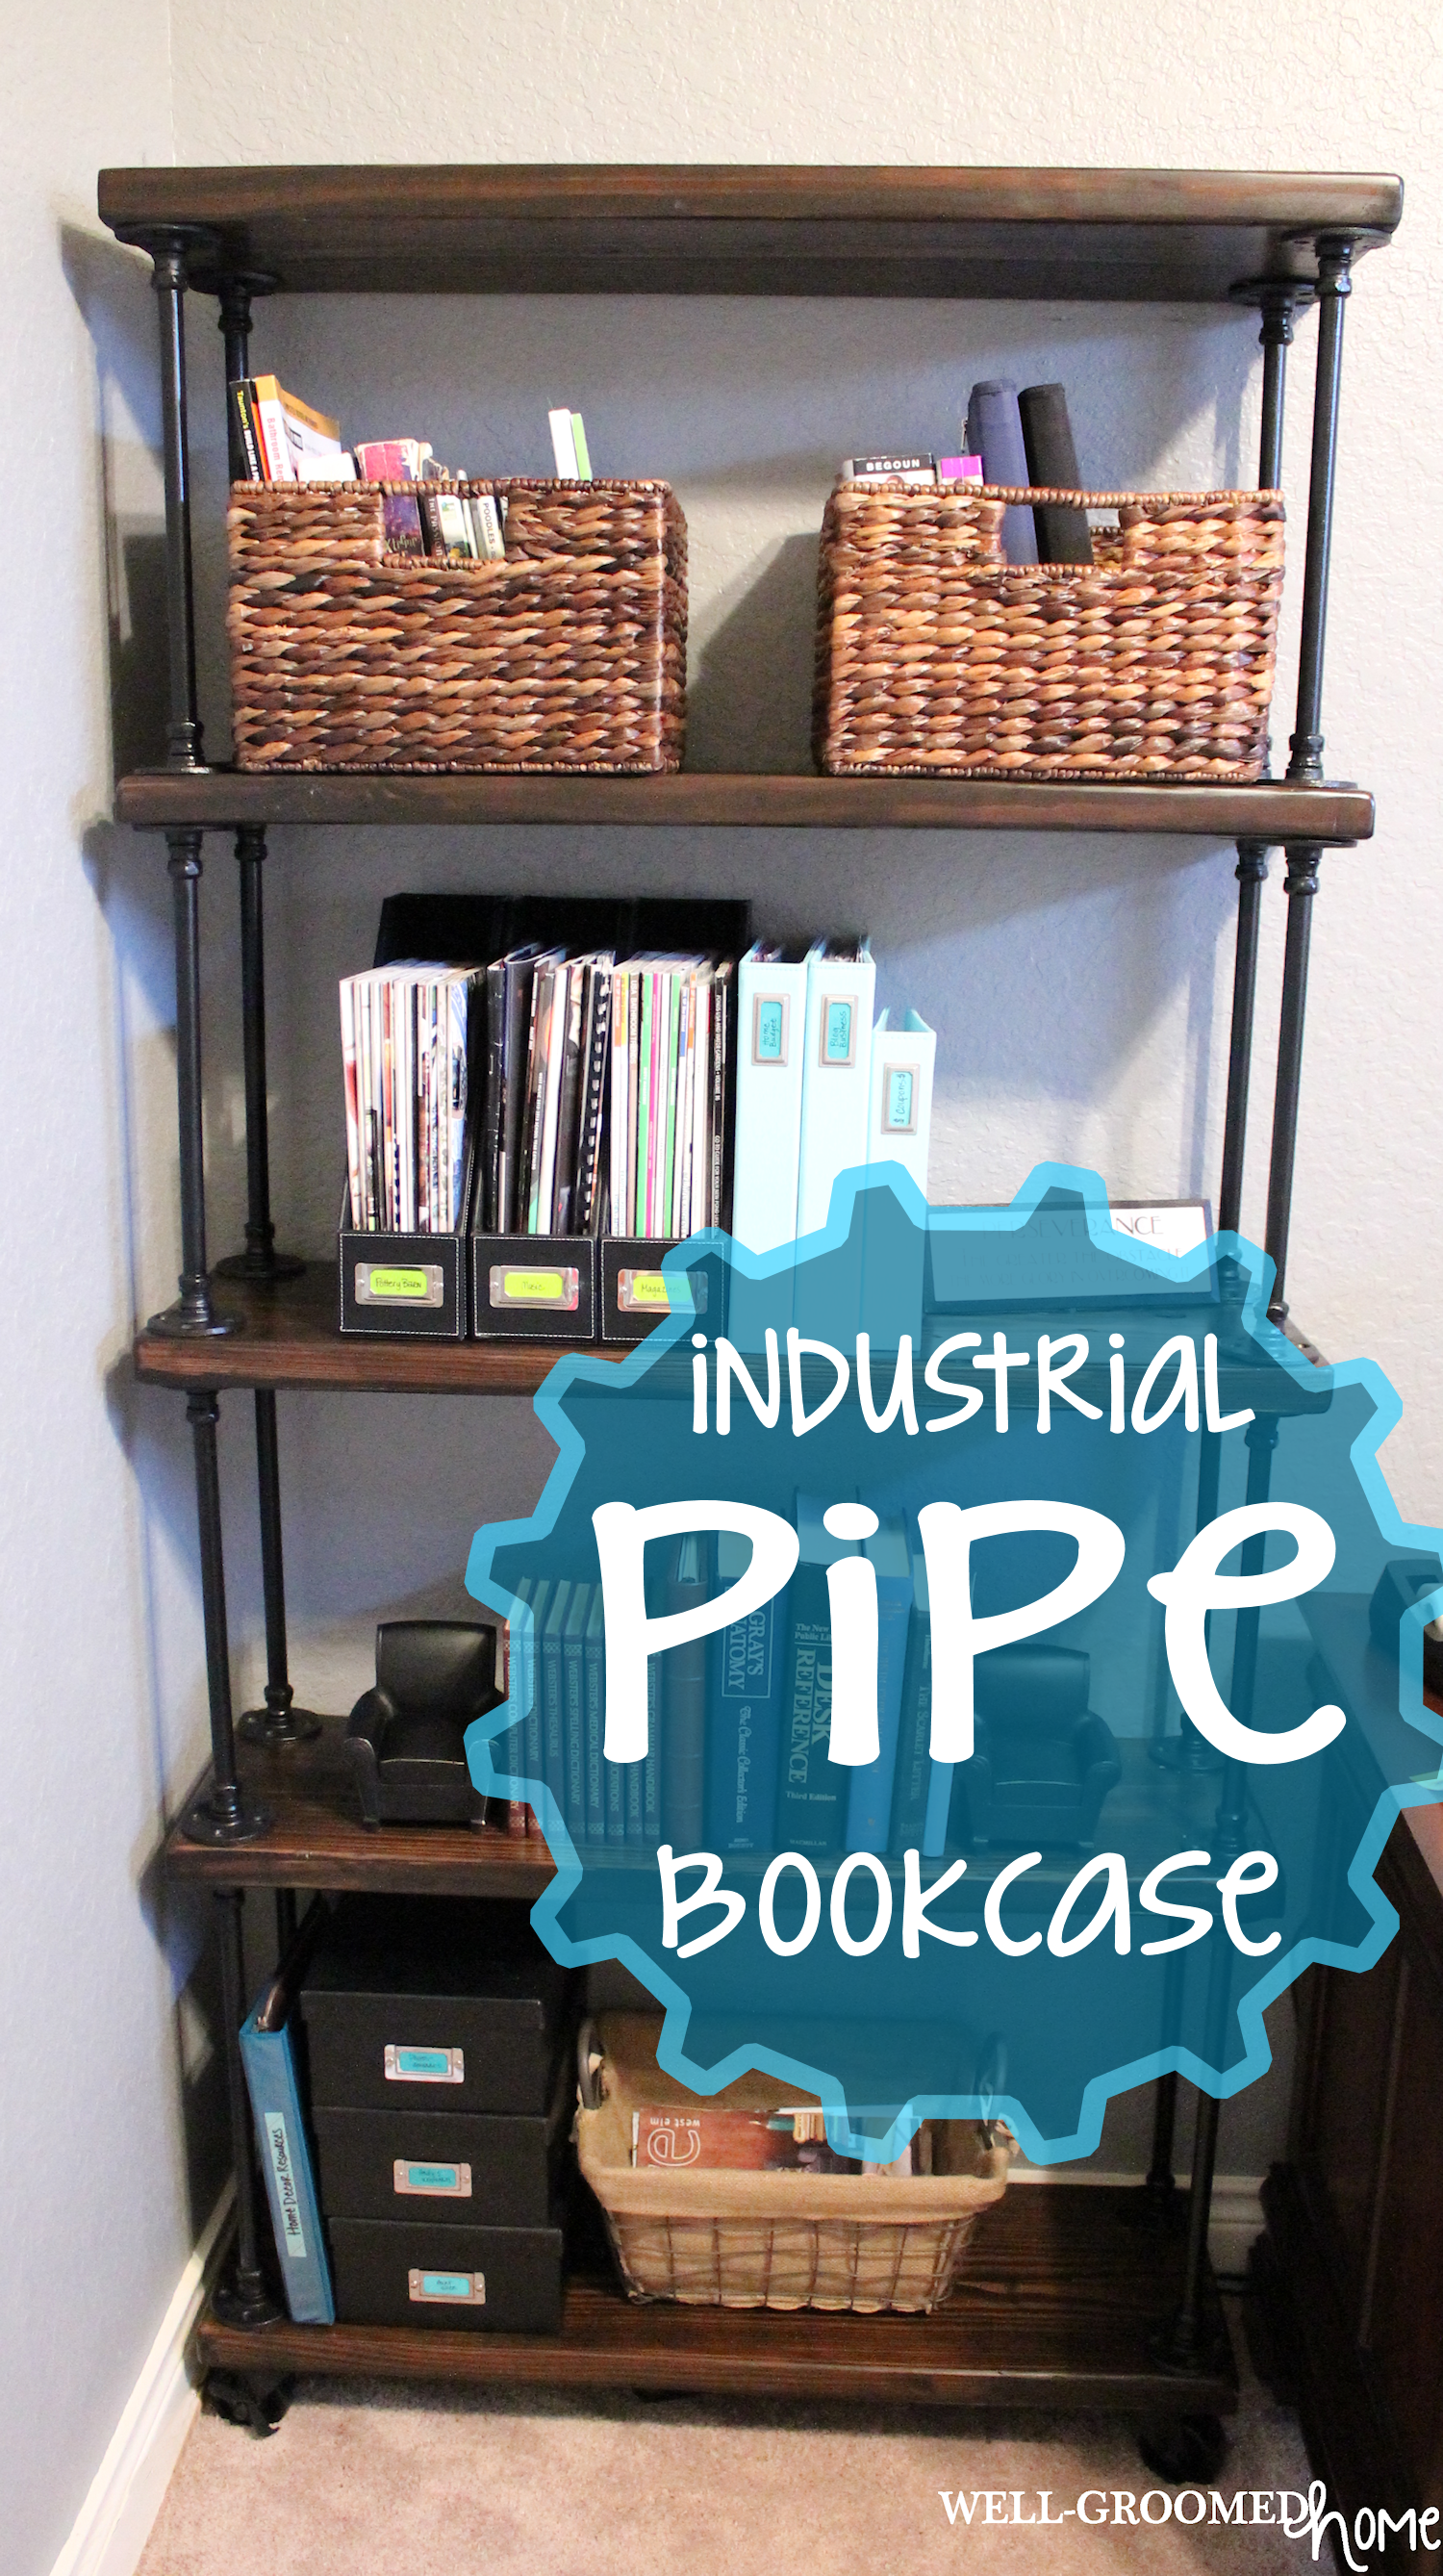 industrial pipe bookcas